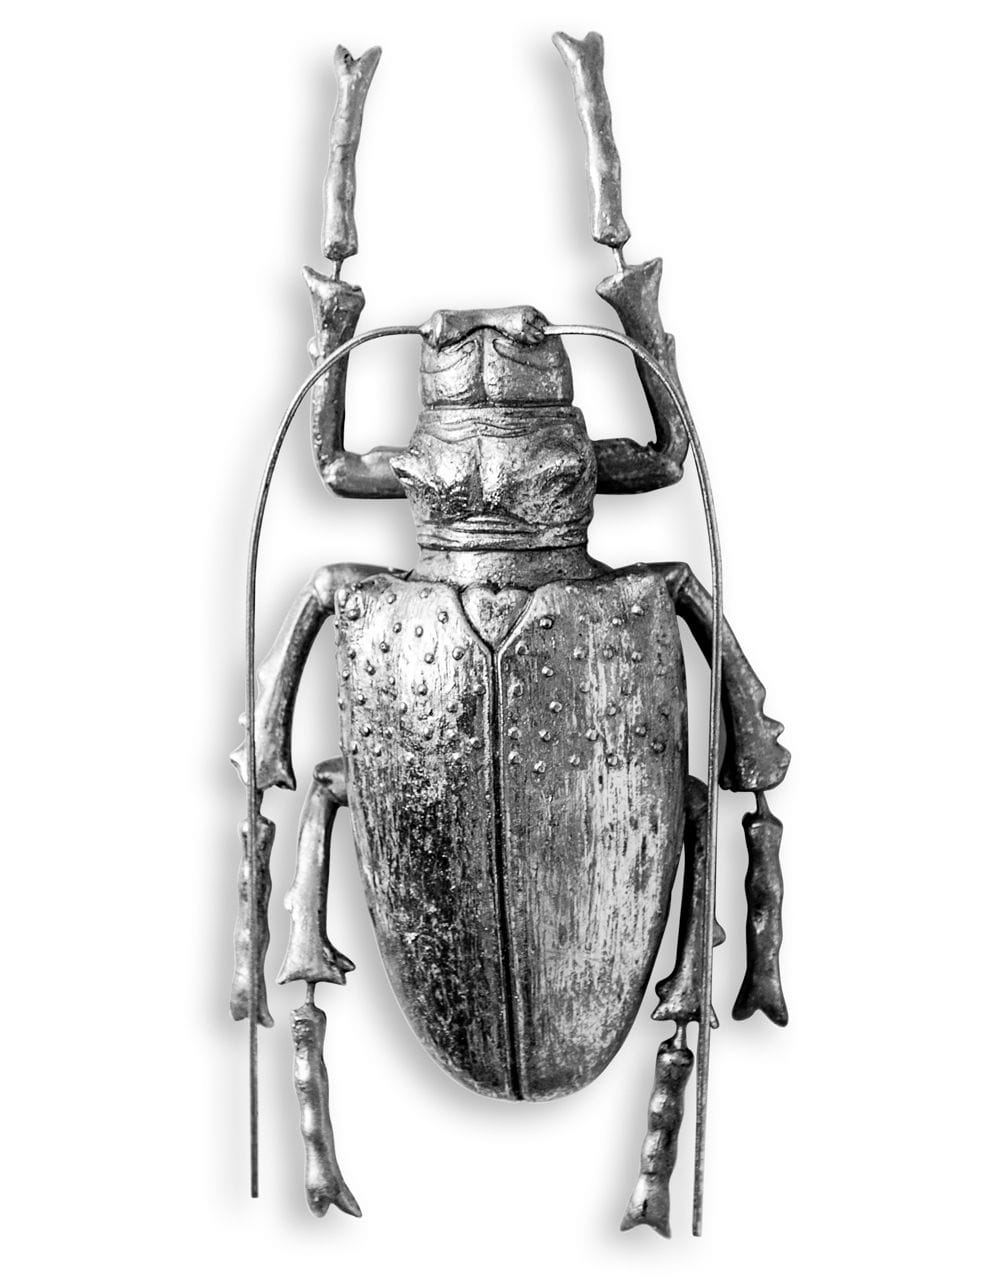 Medium Silver Beetle Wall Decor - €59.00 | L29xW17.5xD8.5cm